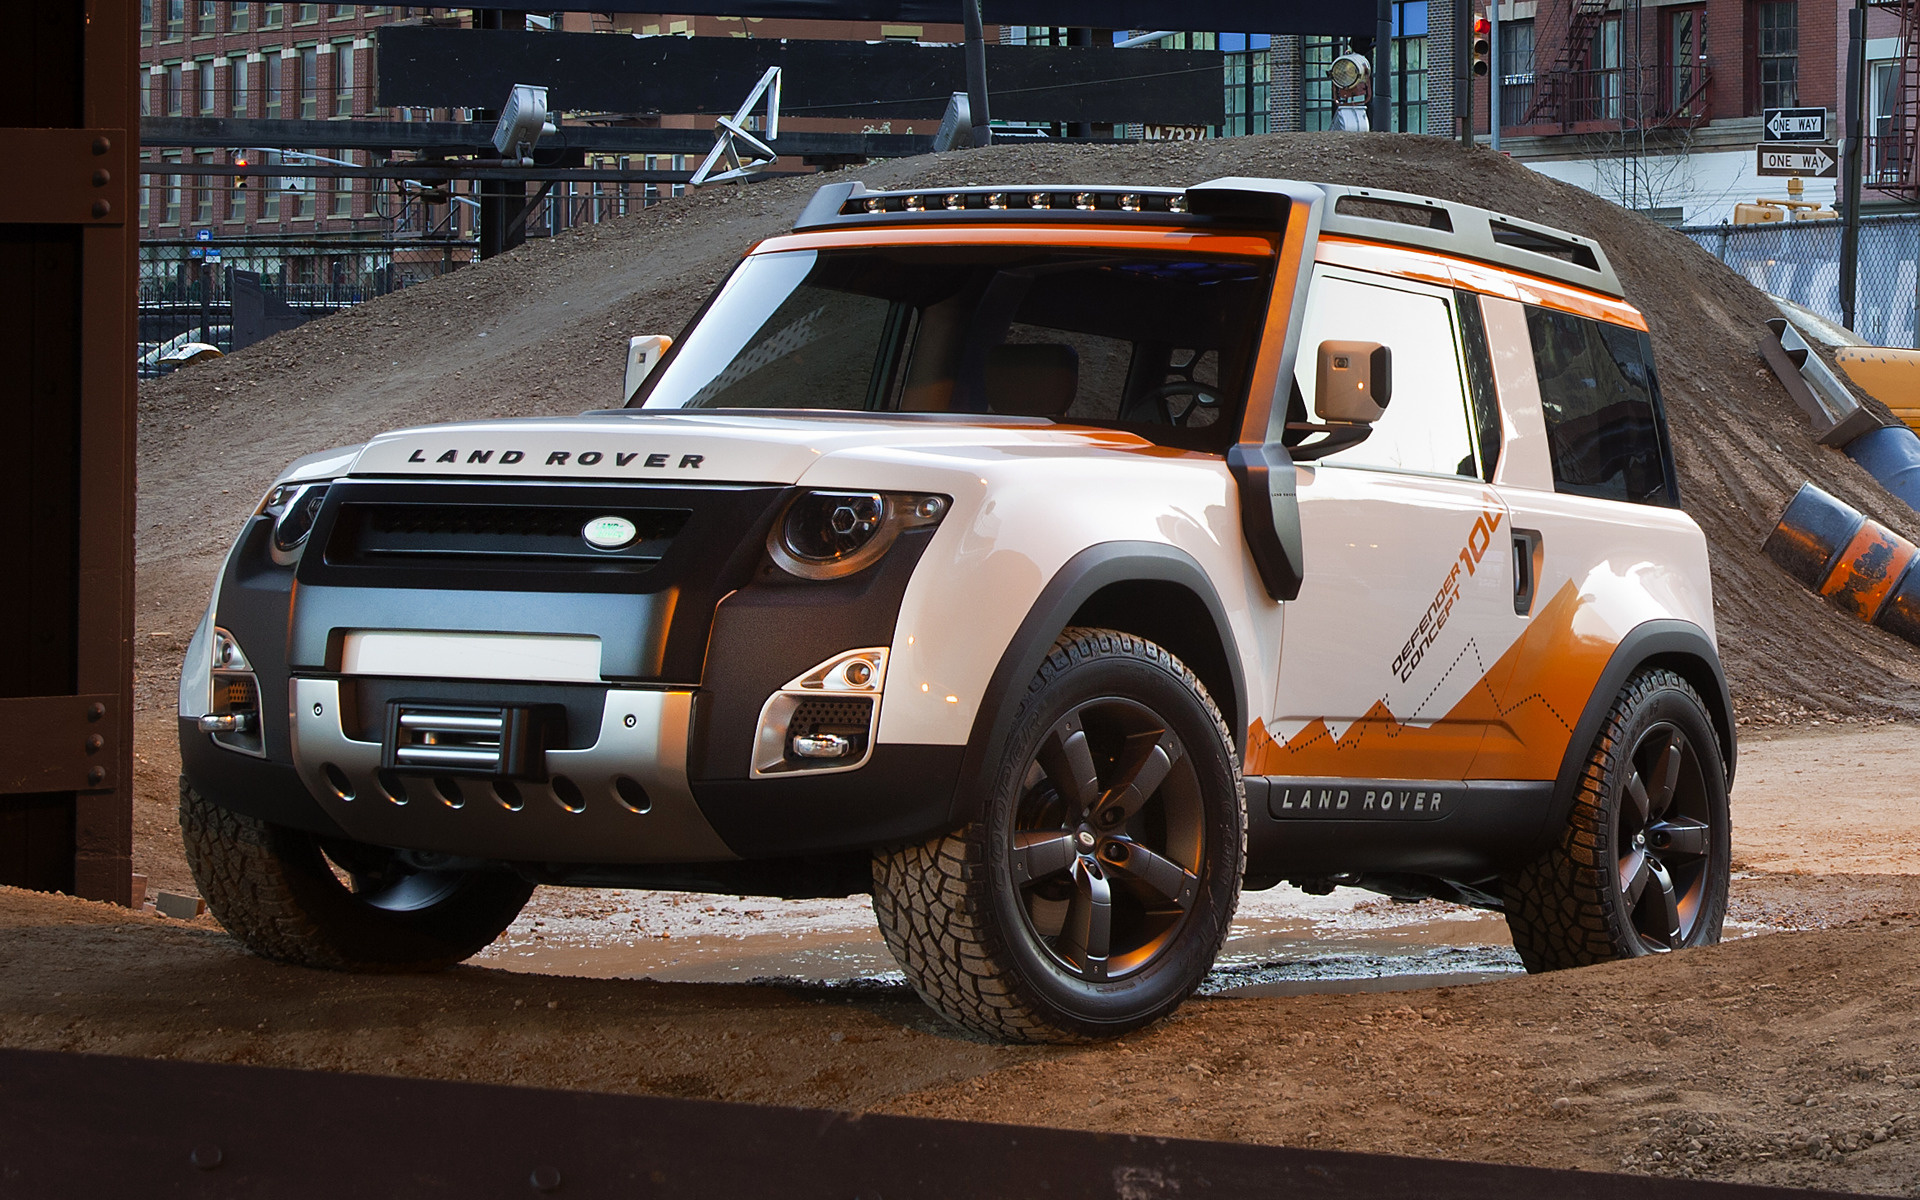 Volvo Wallpaper Hd Land Rover Dc100 Expedition Concept 2012 Wallpapers And